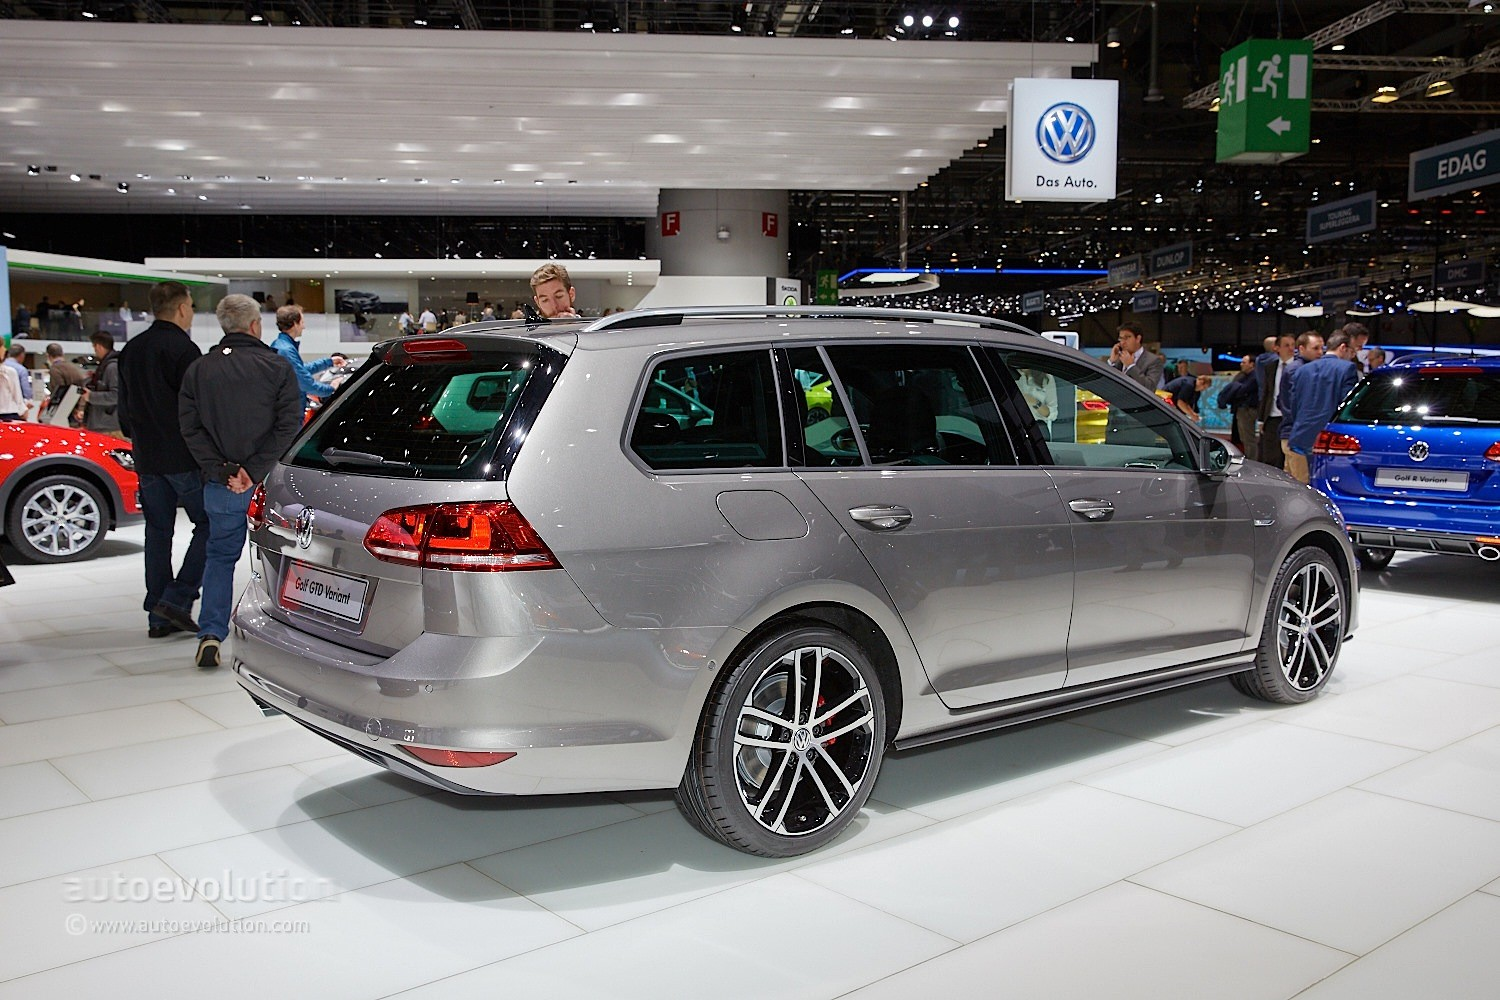 184 hp volkswagen golf gtd variant brings efficiency and. Black Bedroom Furniture Sets. Home Design Ideas